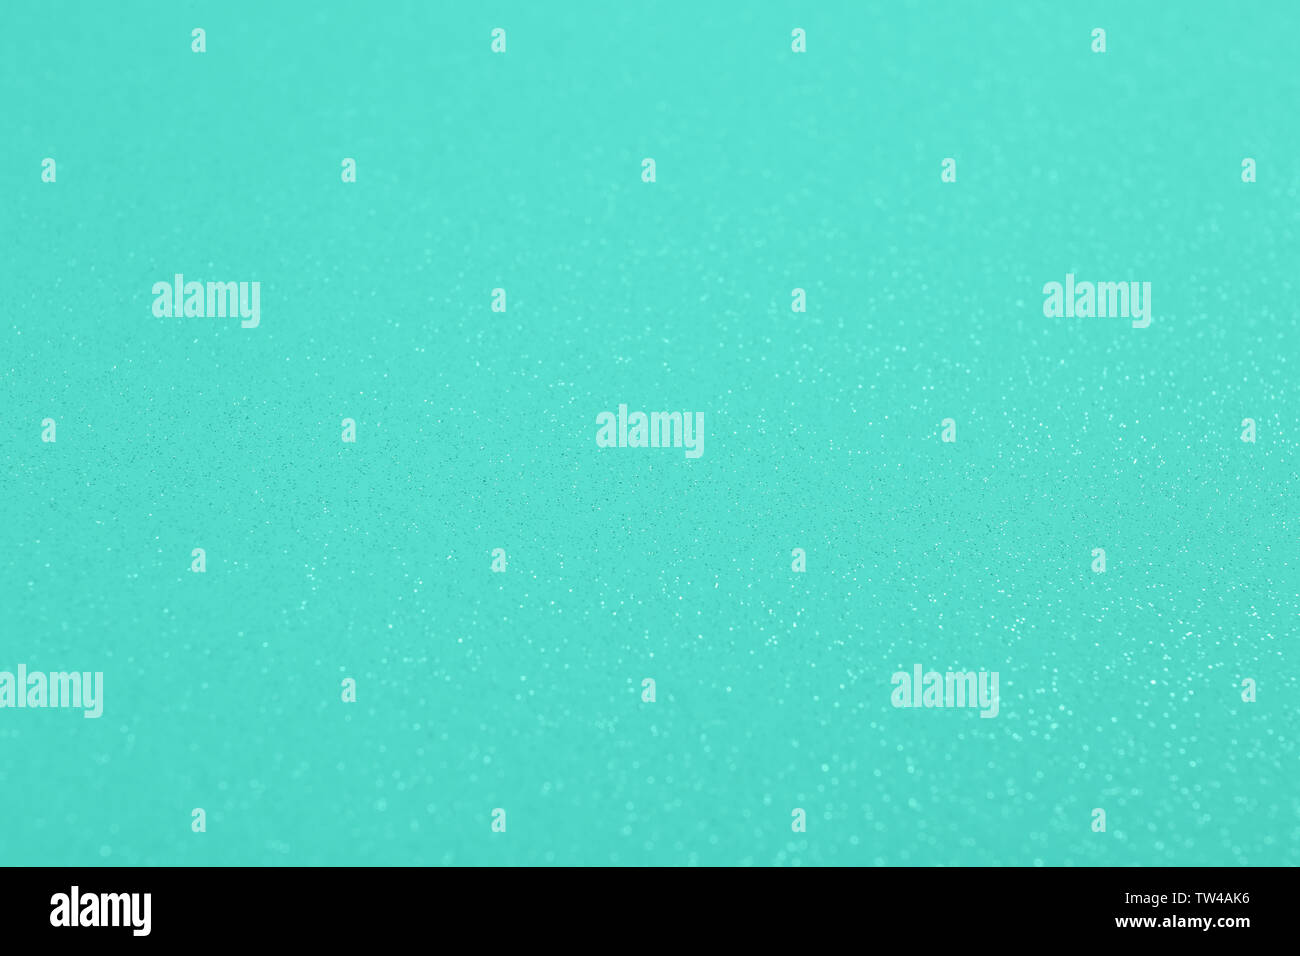 Mint background with glitters Stock Photo